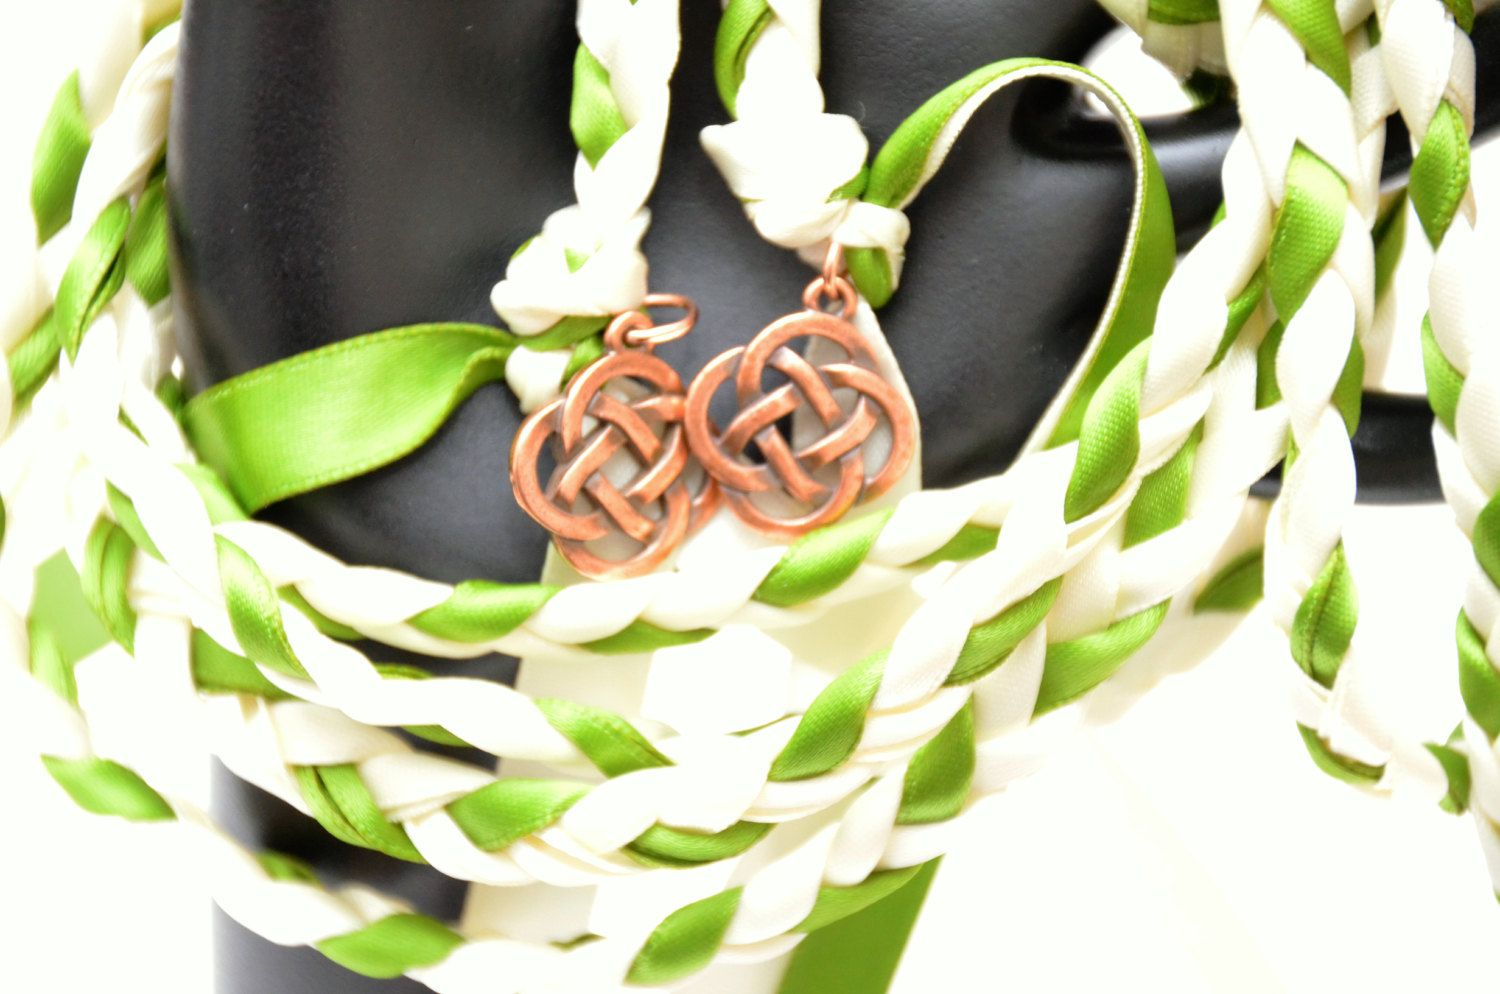 Celtic Knot Wedding Handfasting Cord V2 Ceremony Clover 6ft Irish Tying The By Divinitybraid On Etsy